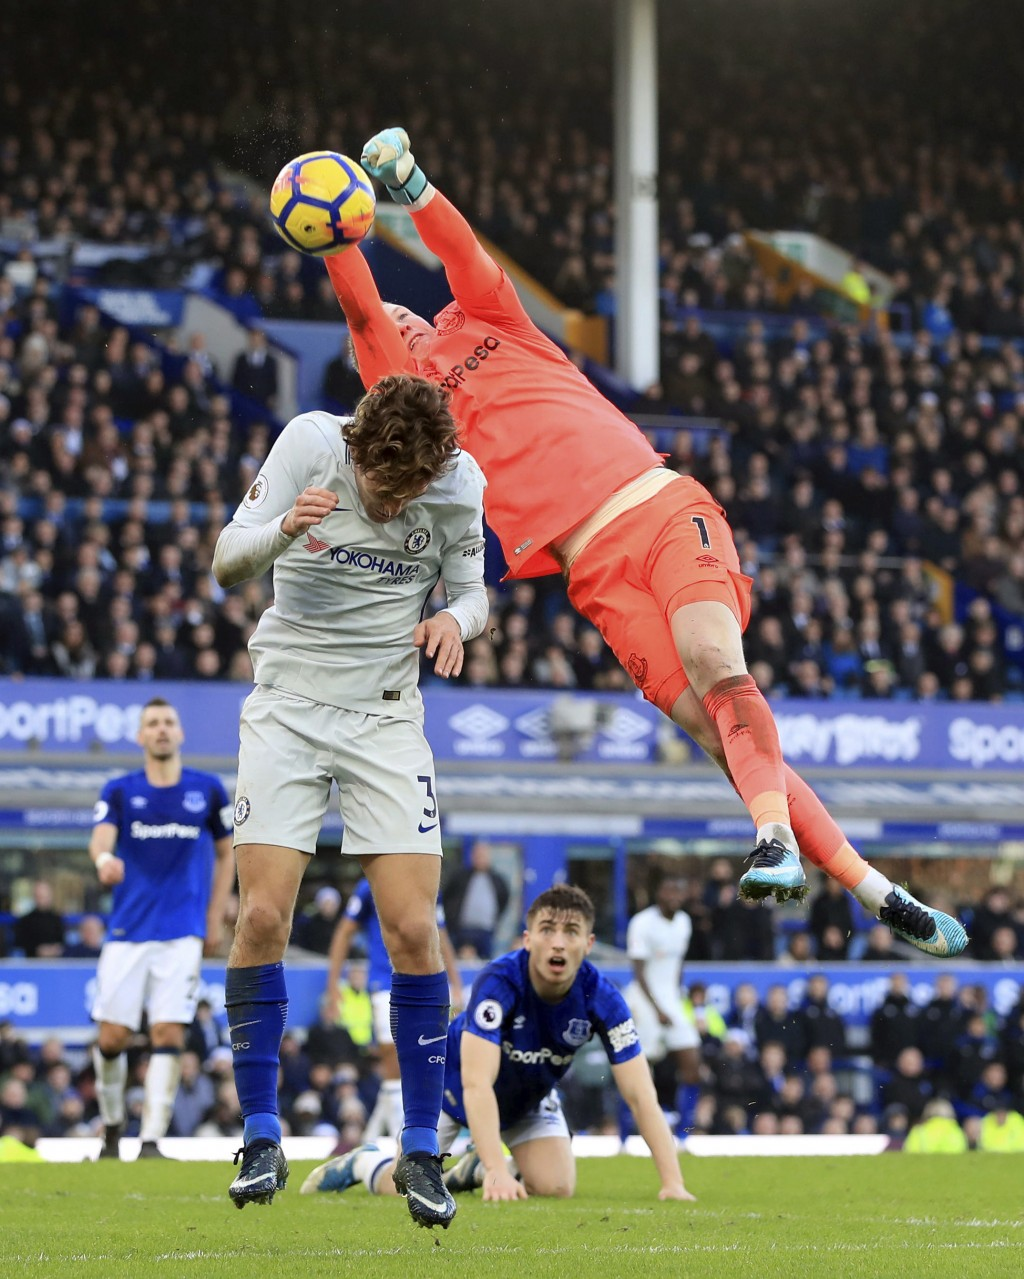 Chelsea's Marcos Alonso, left and Everton goalkeeper Jordan Pickford battle for the ball, during the English Premier League soccer match between Evert...